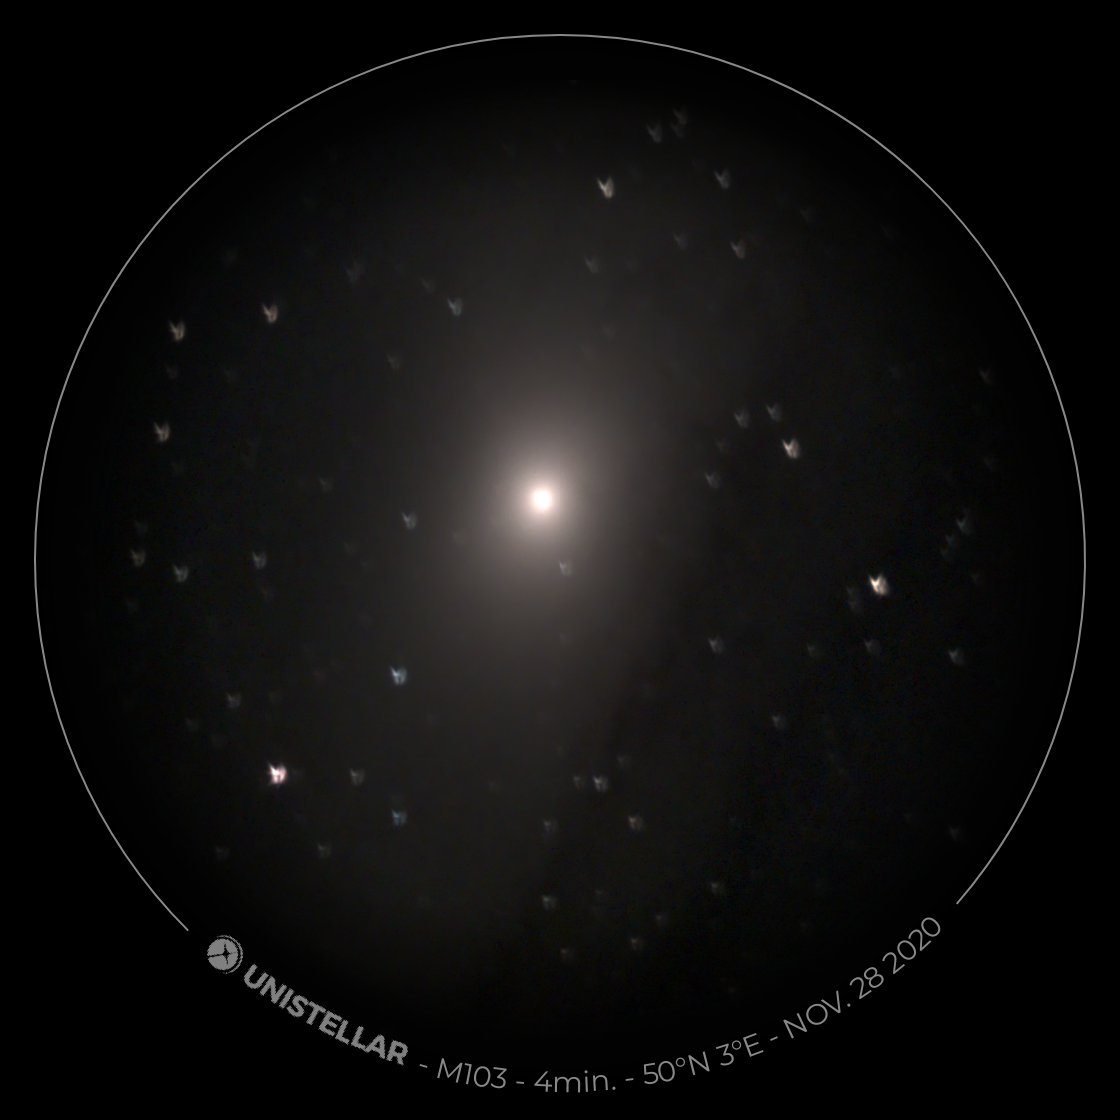 eVscope-20201128-225348.png